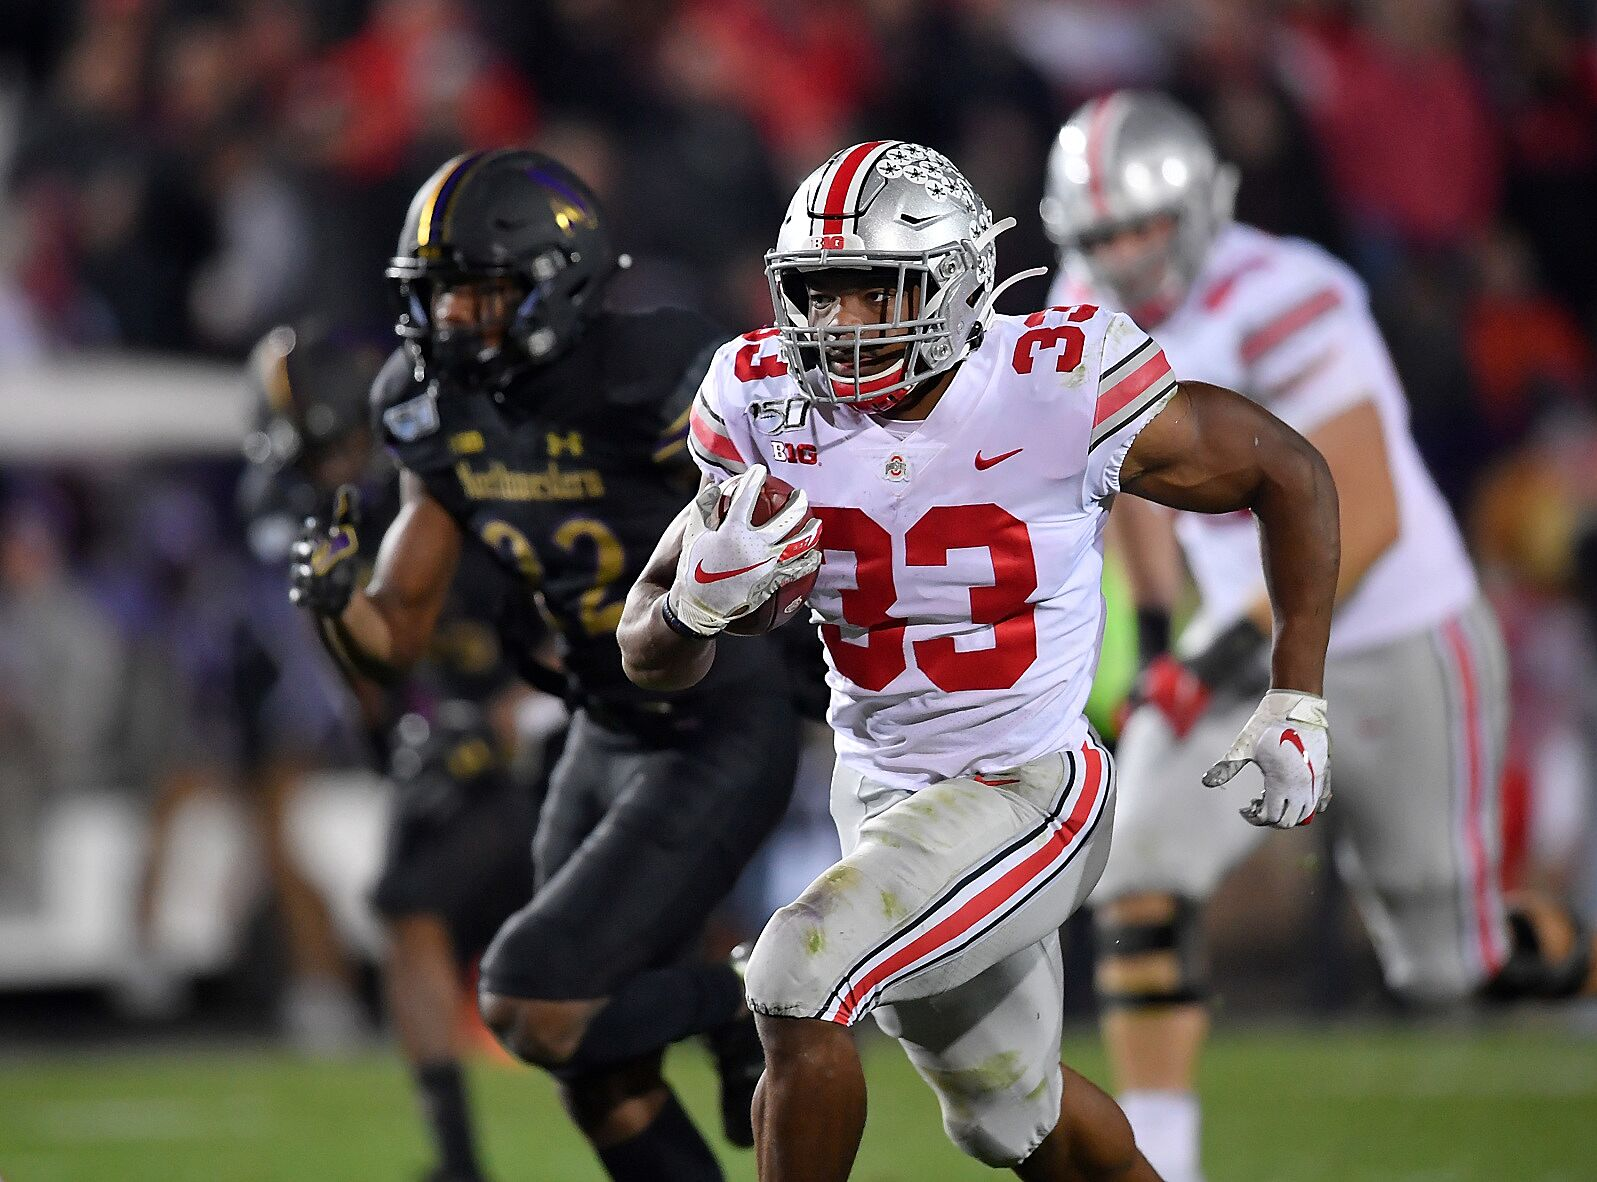 Ohio State Football: Which games and storylines impacted CFP landscape